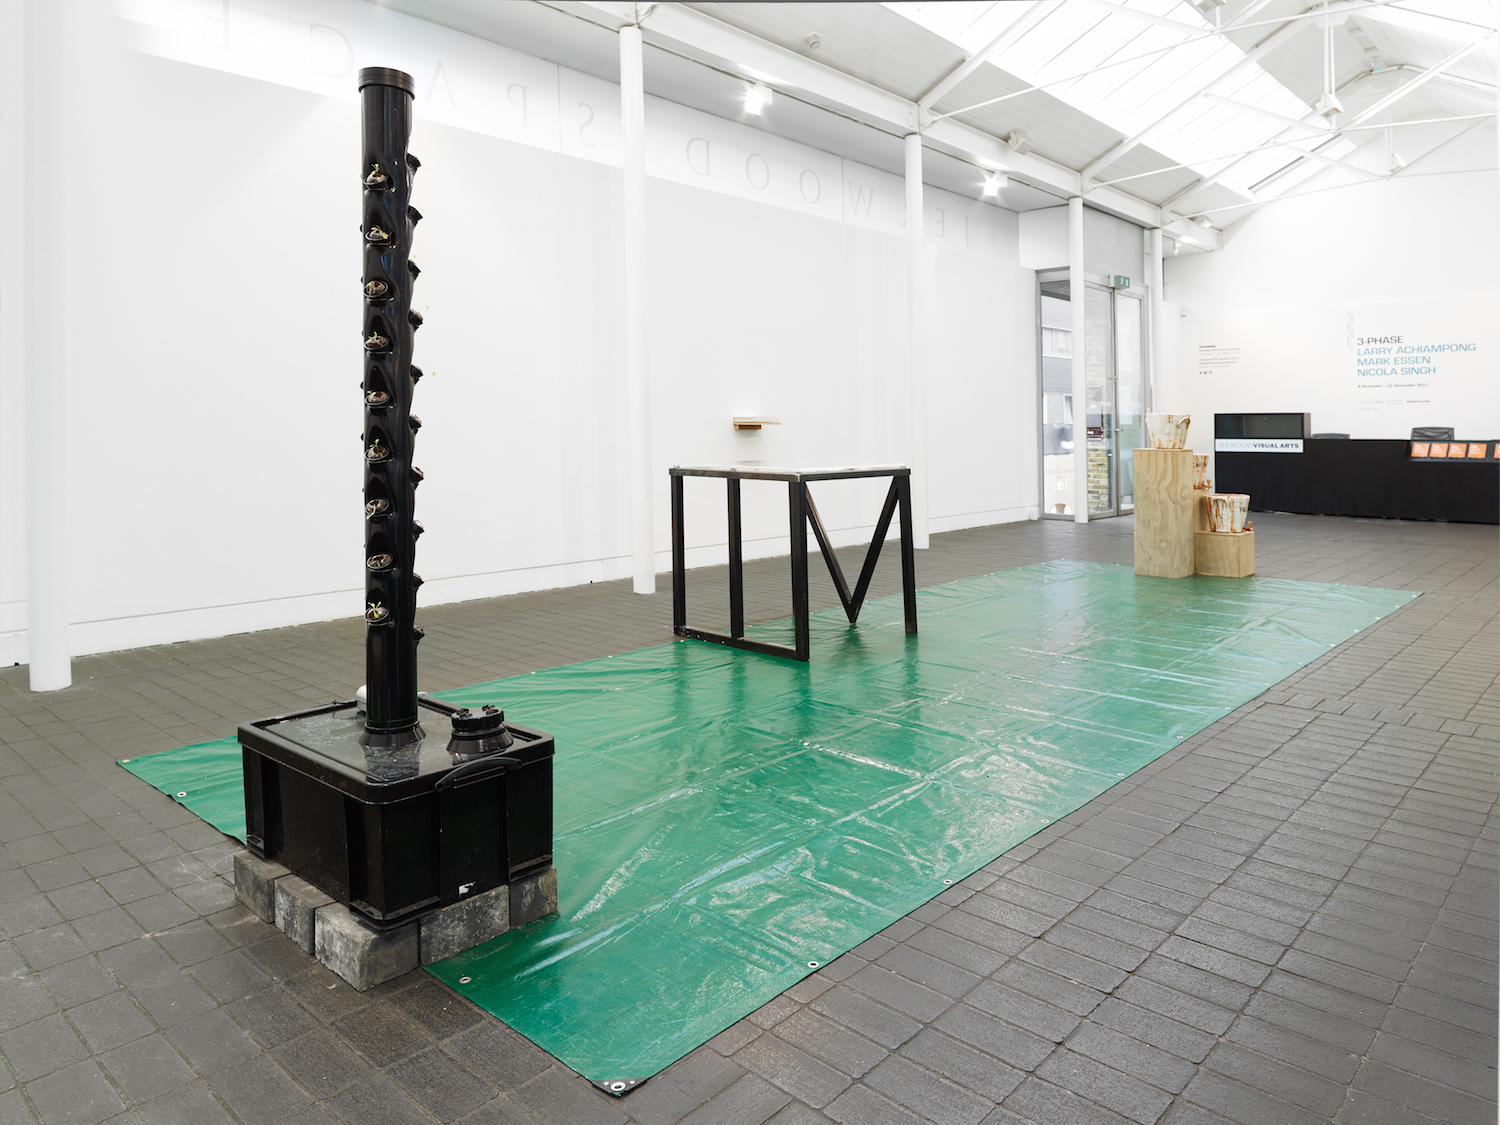 Mark Essen, 'Tis 'Ard to be a God, 2017 – installation view. Commissioned for 3 Phase, a partnership between Jerwood Charitable Foundation, WORKPLACE and Eastside Projects. Photo: Anna Arca